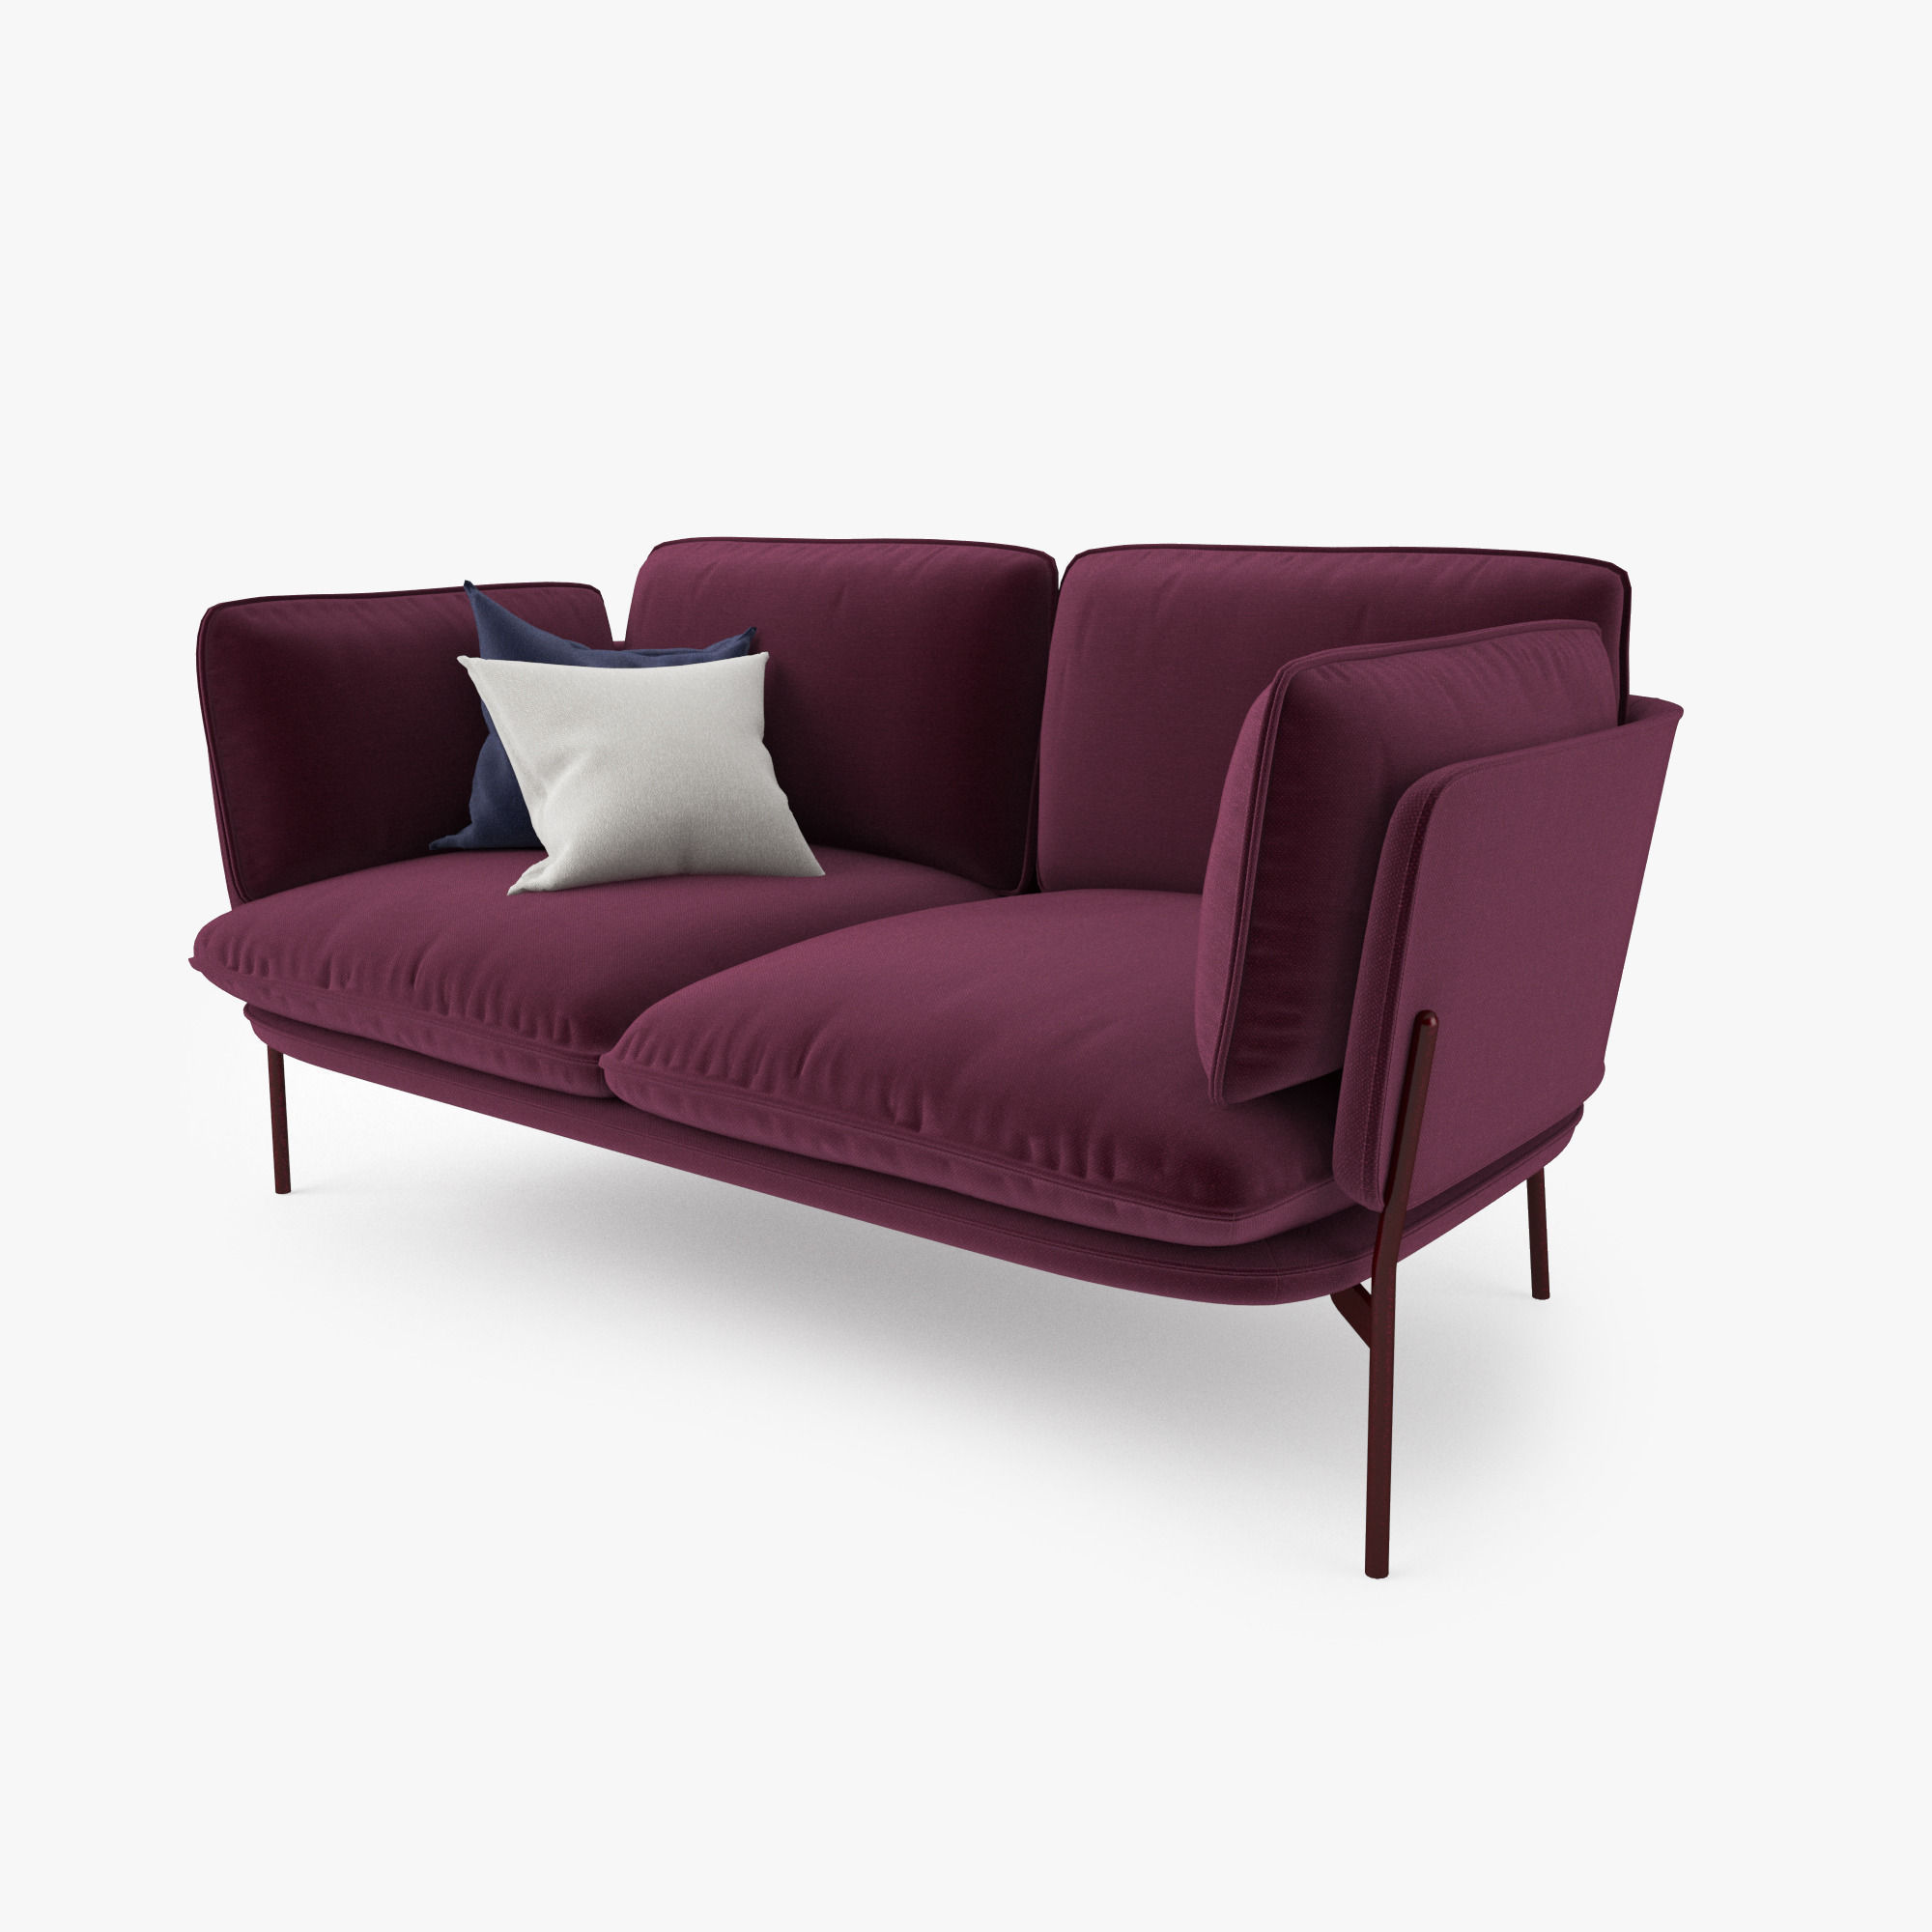 ... And Tradition Cloud Two Seater Sofa 3d Model Max Obj Mtl Fbx 6 ...